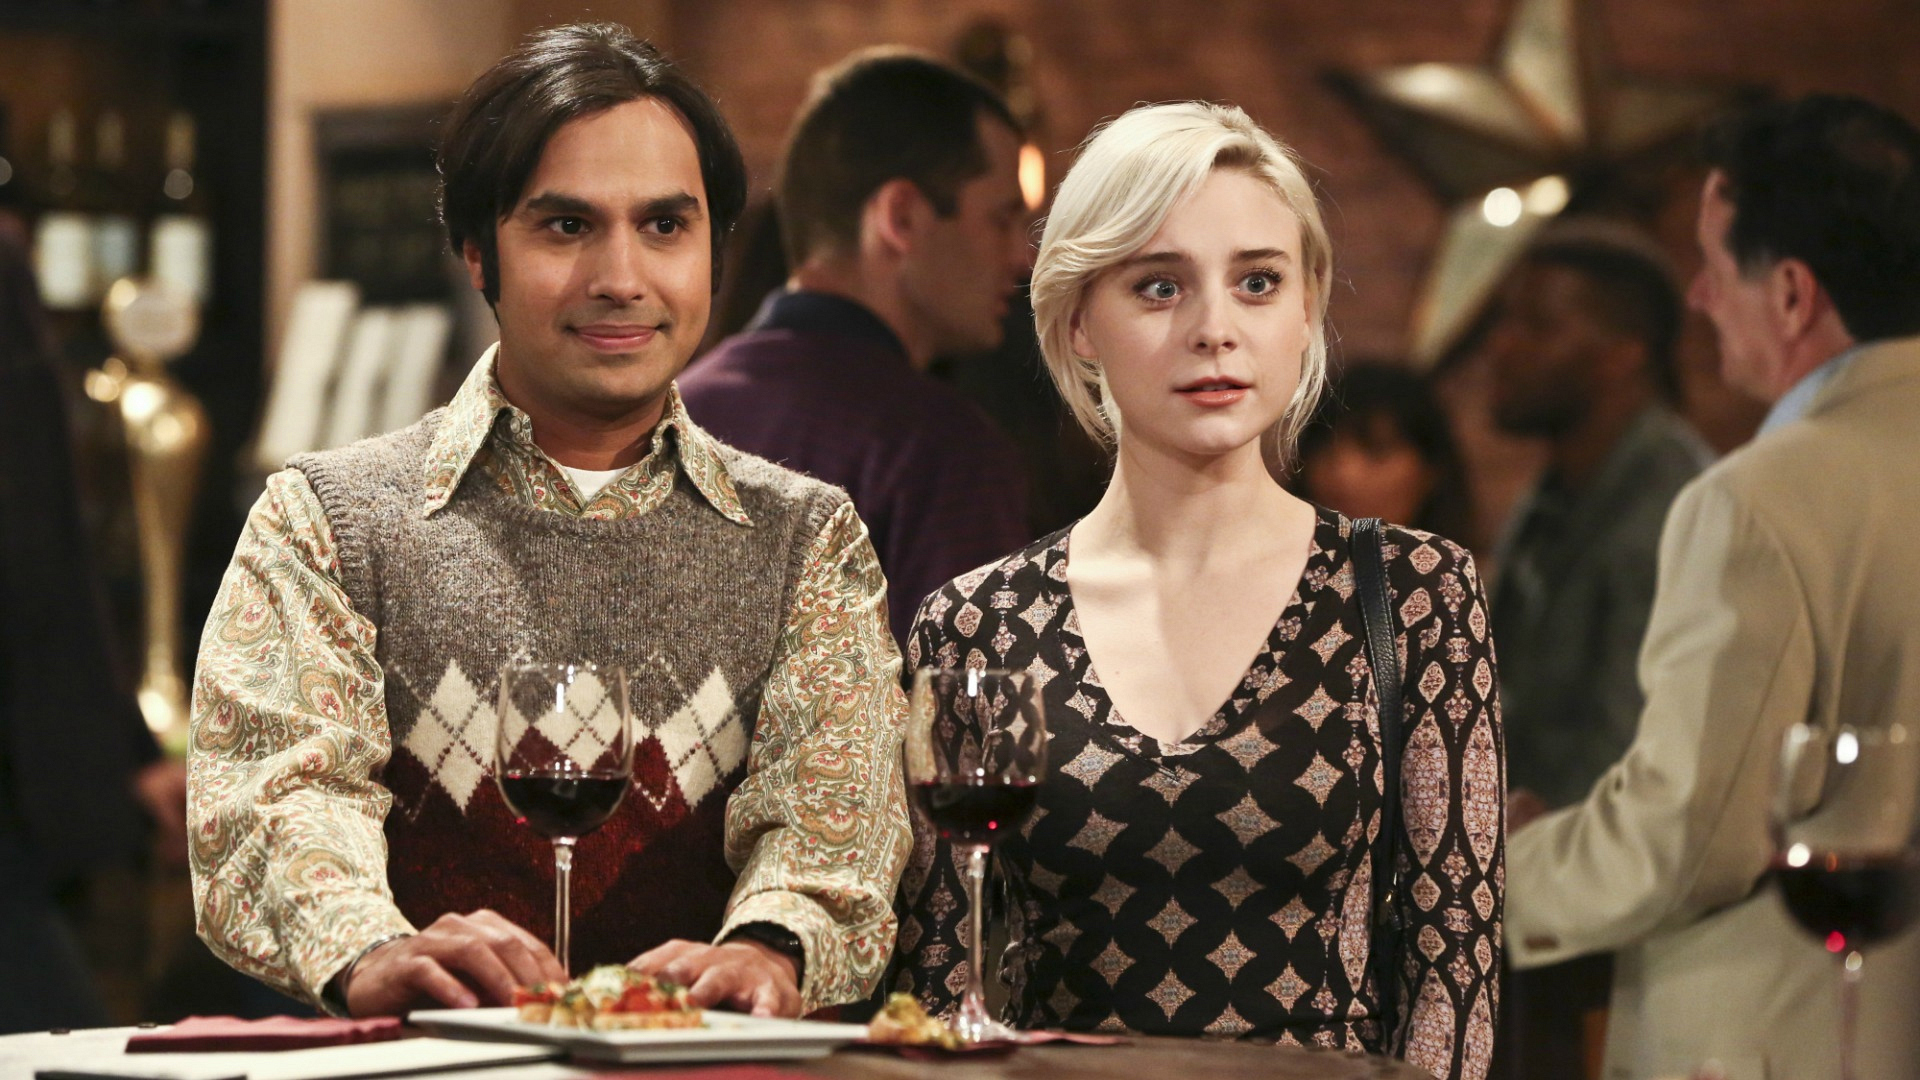 How will Raj deal with his love triangle on The Big Bang Theory?